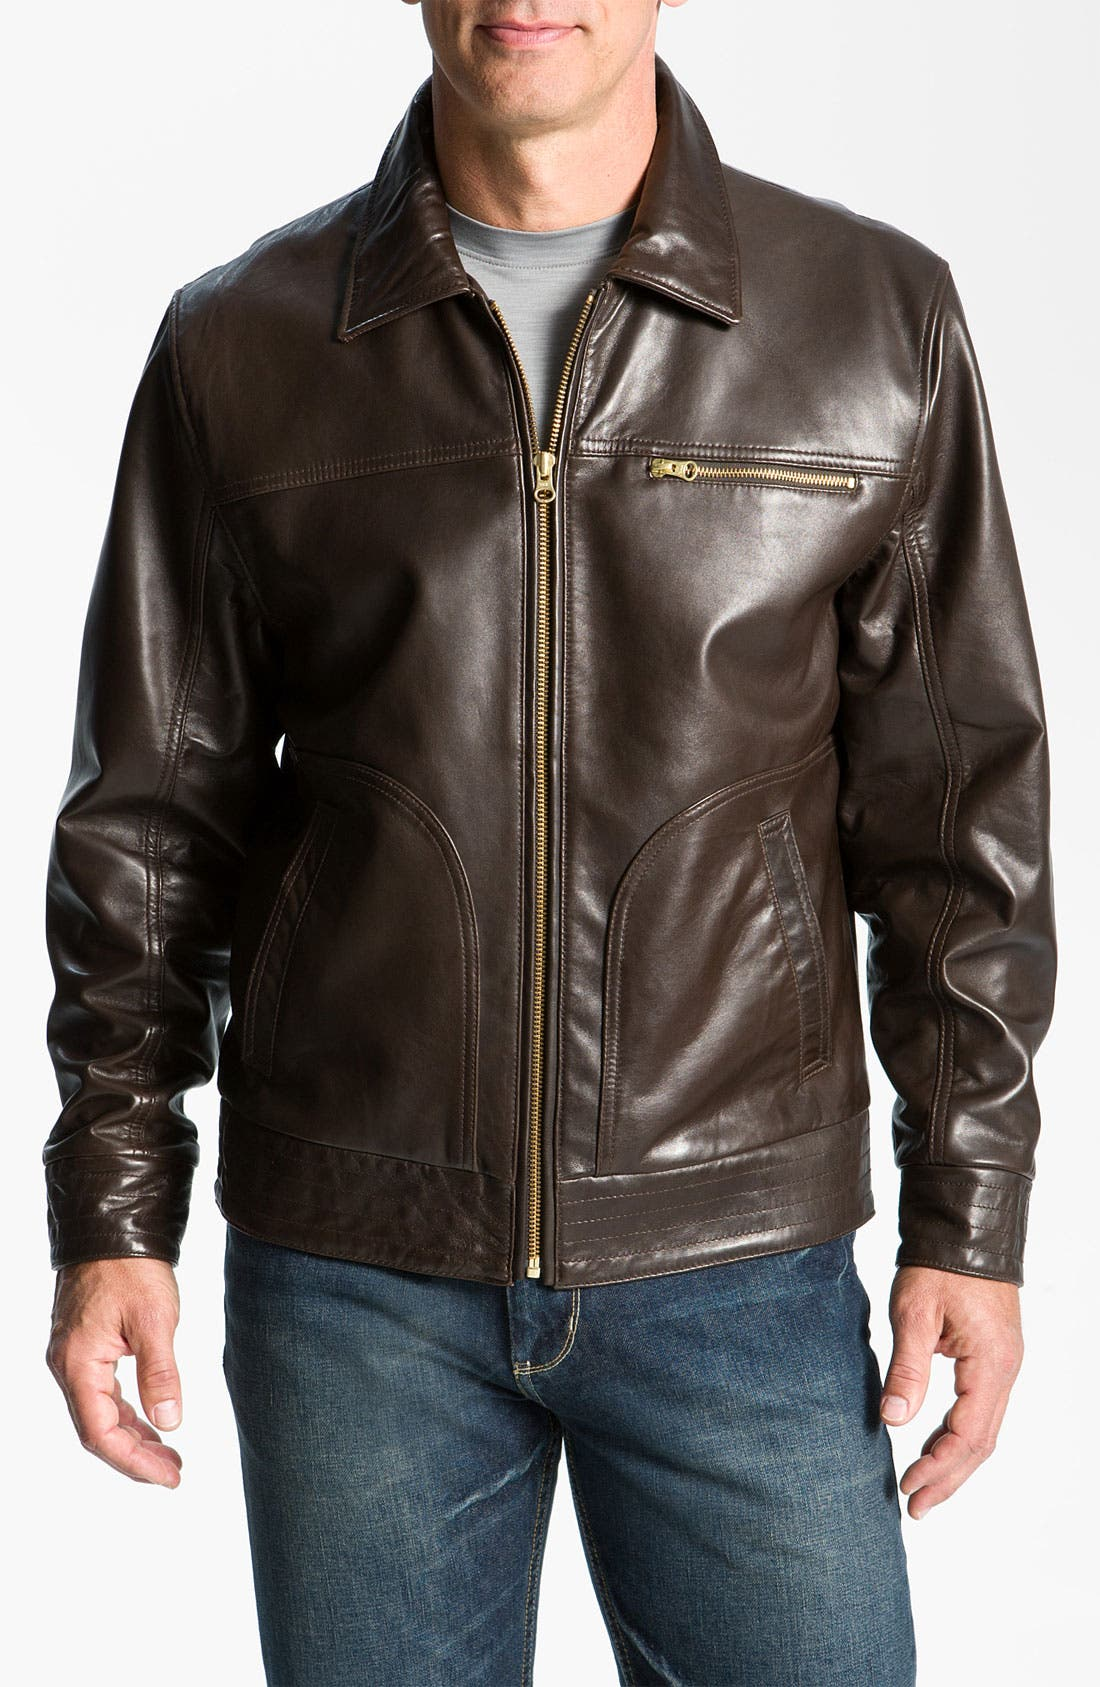 Main Image - Cutter & Buck 'Wildridge' Leather Bomber Jacket (Big & Tall)